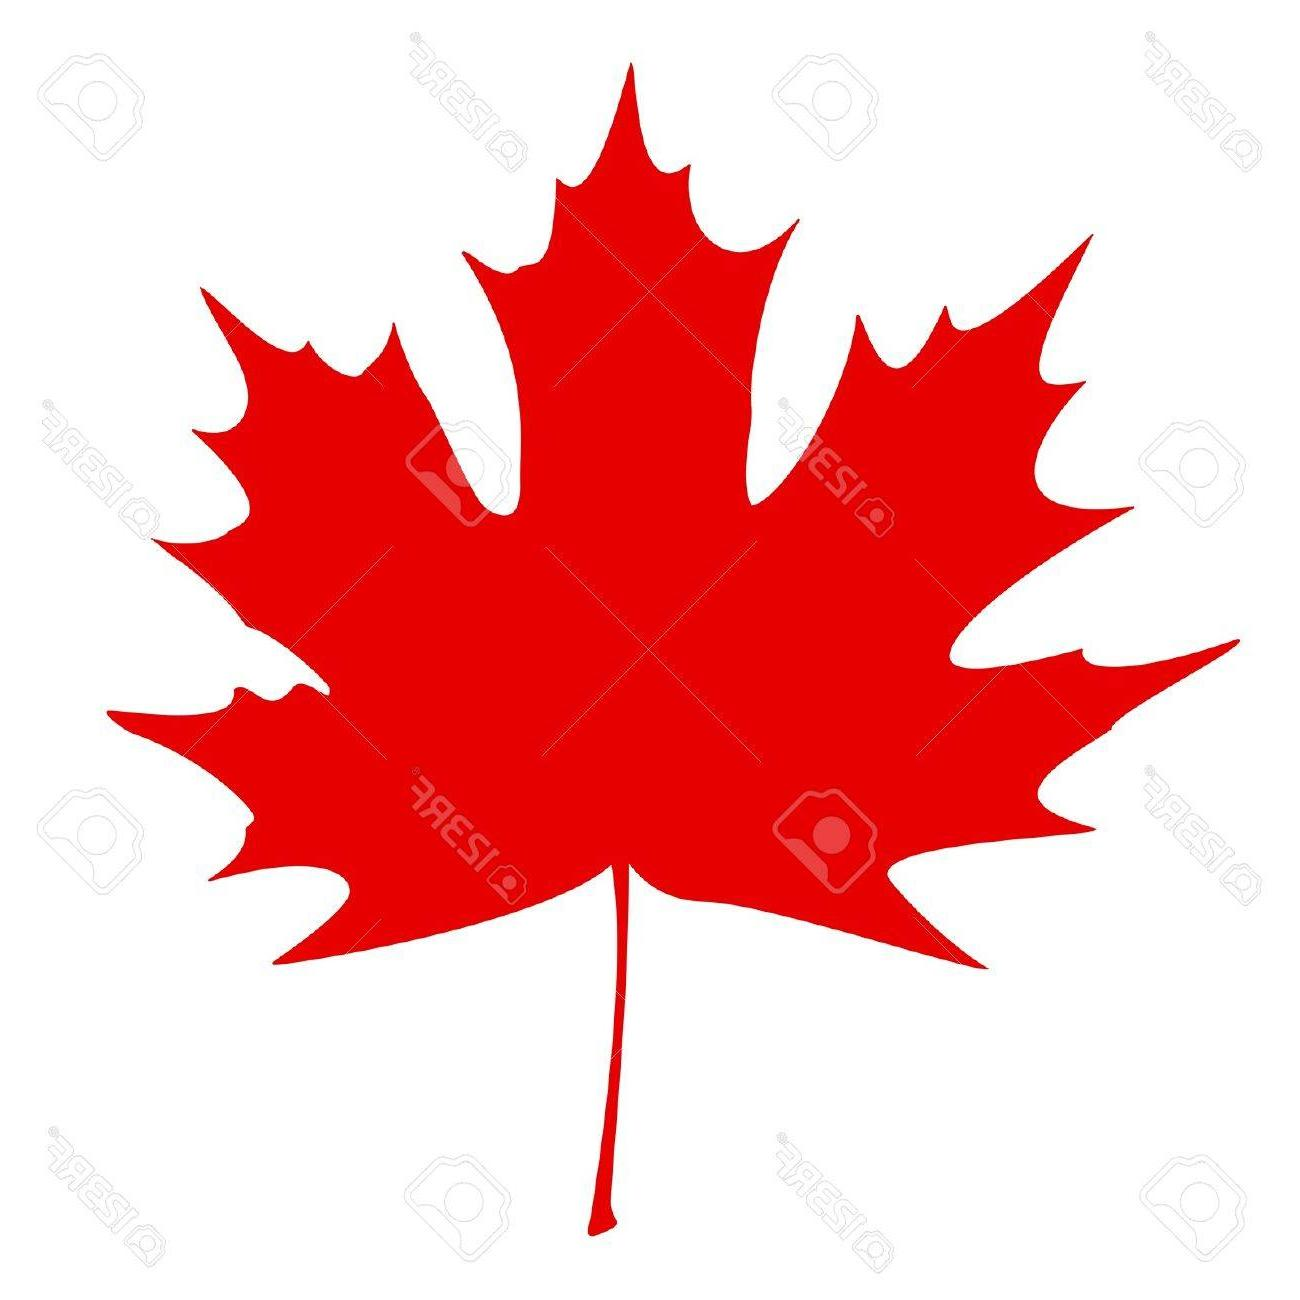 1300x1300 Best Hd Stylized Canadian Flag Vector Illustration Cdr